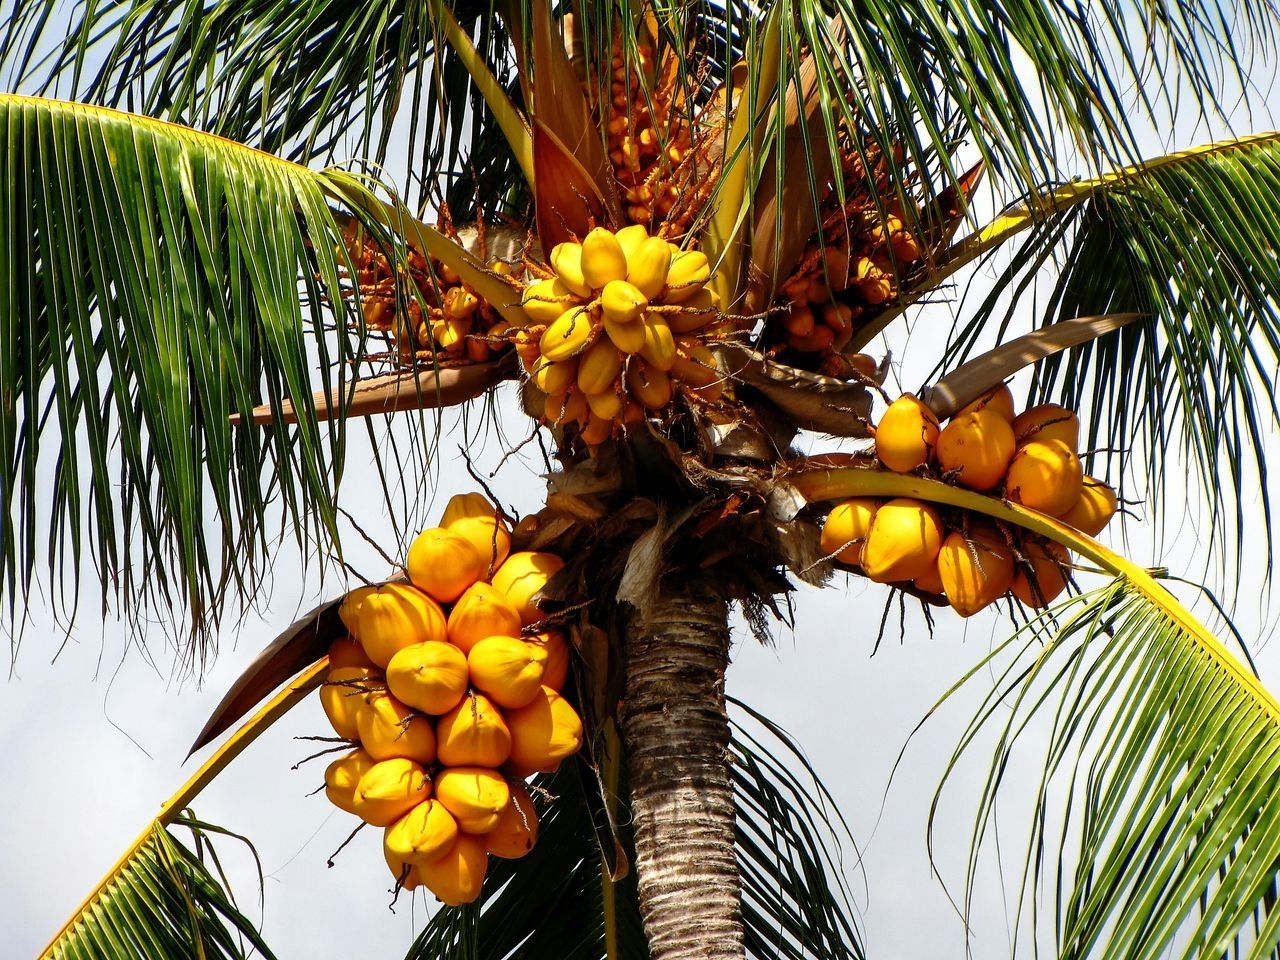 Low Angle View Of Yellow Coconuts On Palm Tree